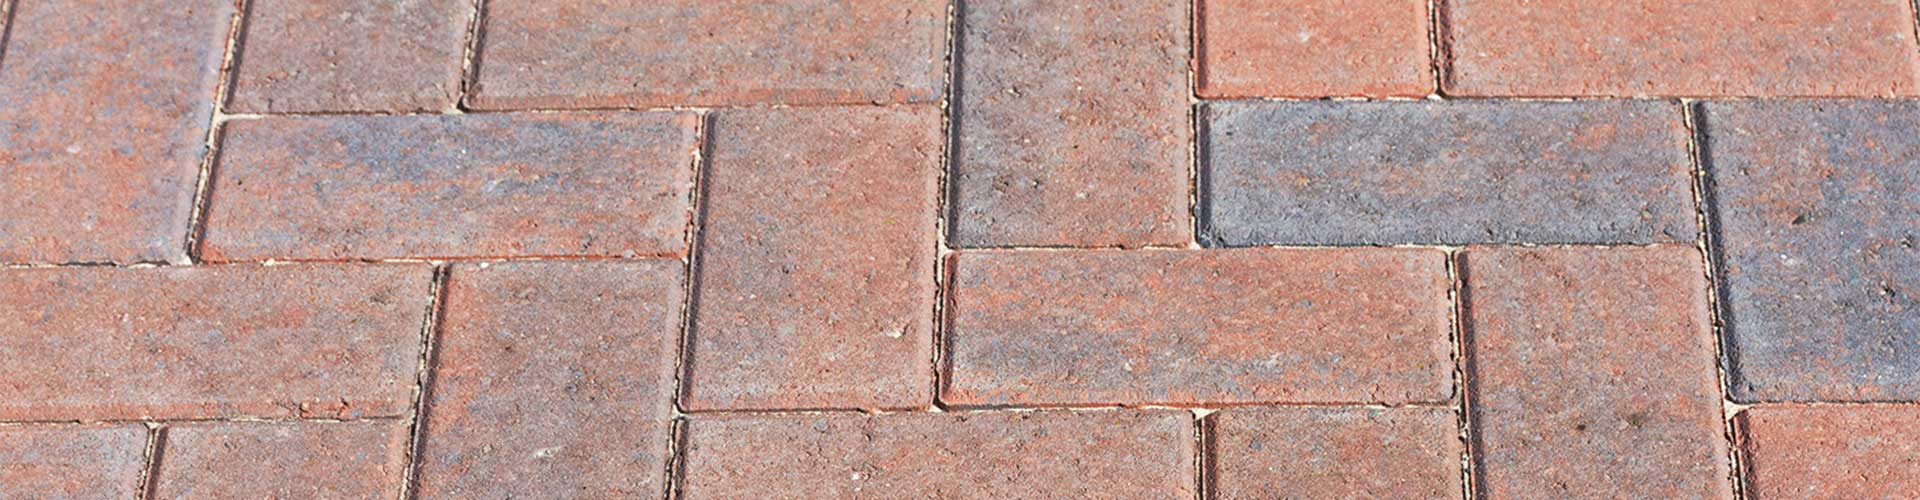 Essex Block Paving Designs